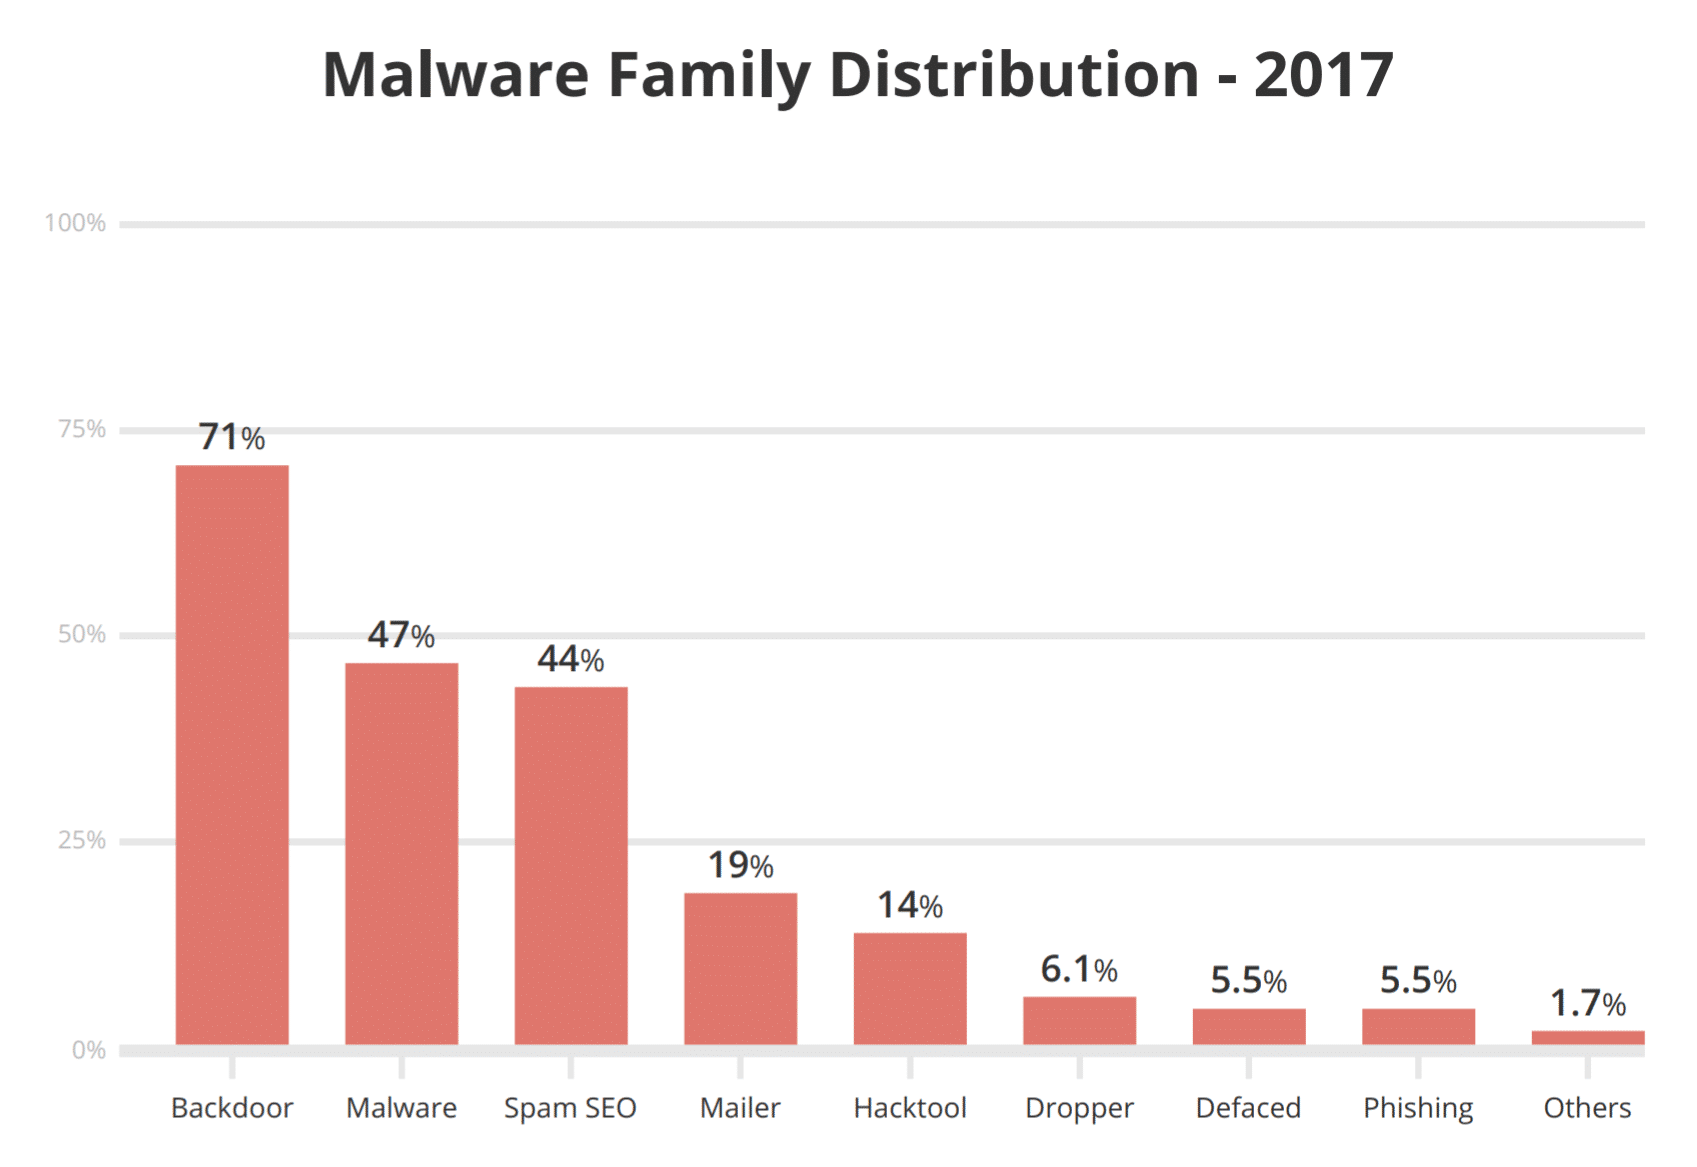 Malware family distribution